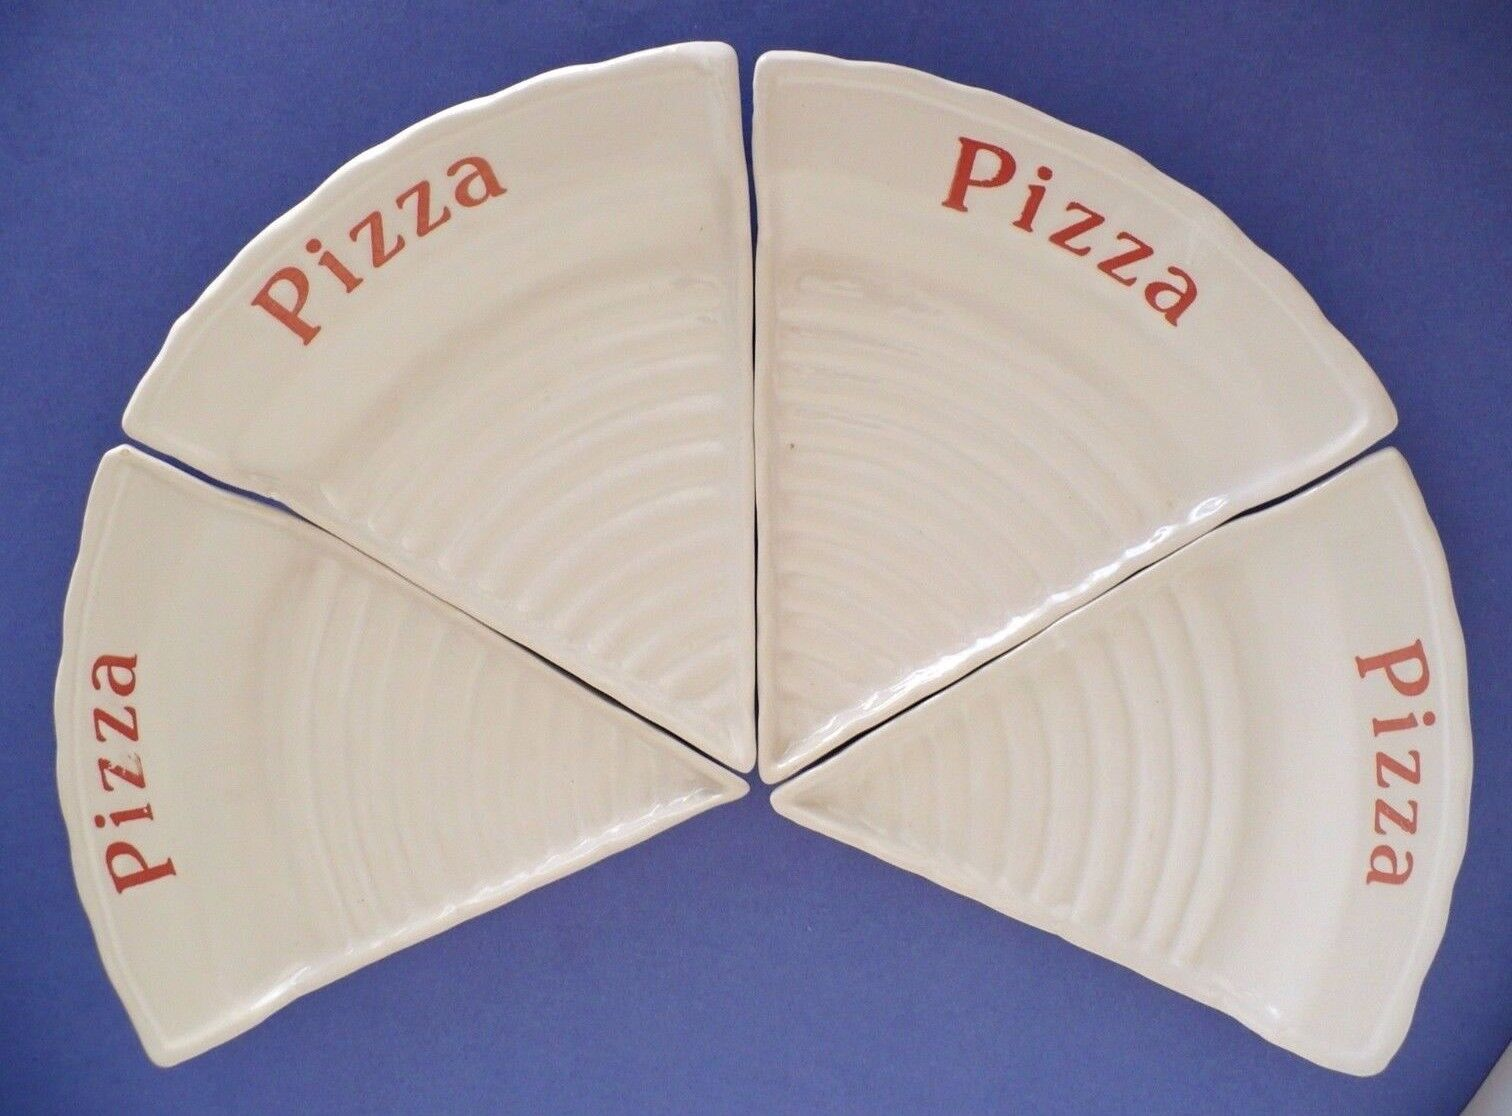 Vintage Set of 4 Porcelain Pizza Slice Shape Plate Dish. 1970's Approx 8.25  L